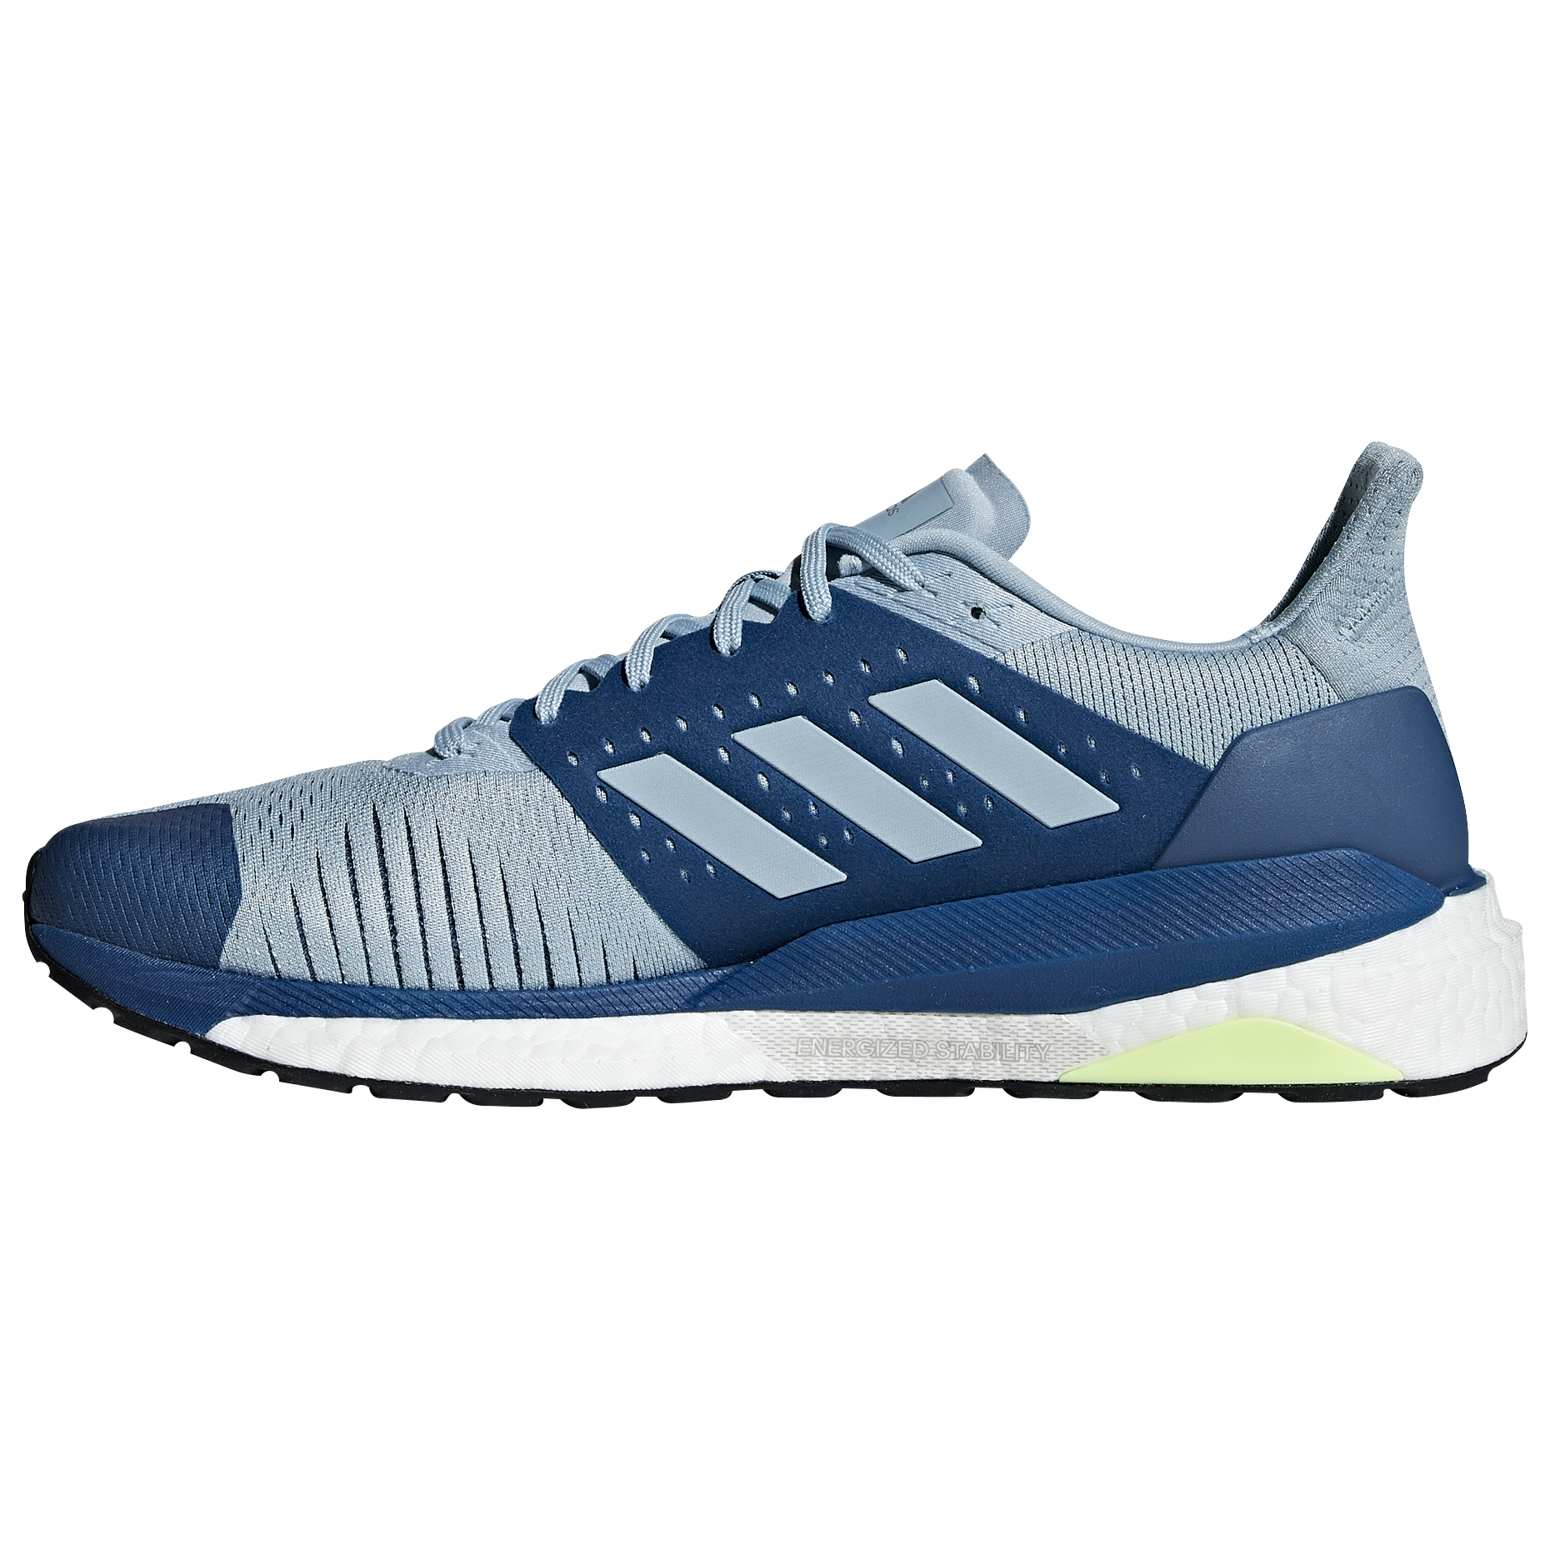 new product d1330 cde82 ADIDAS SOLAR GLIDE ST M - gallery 1